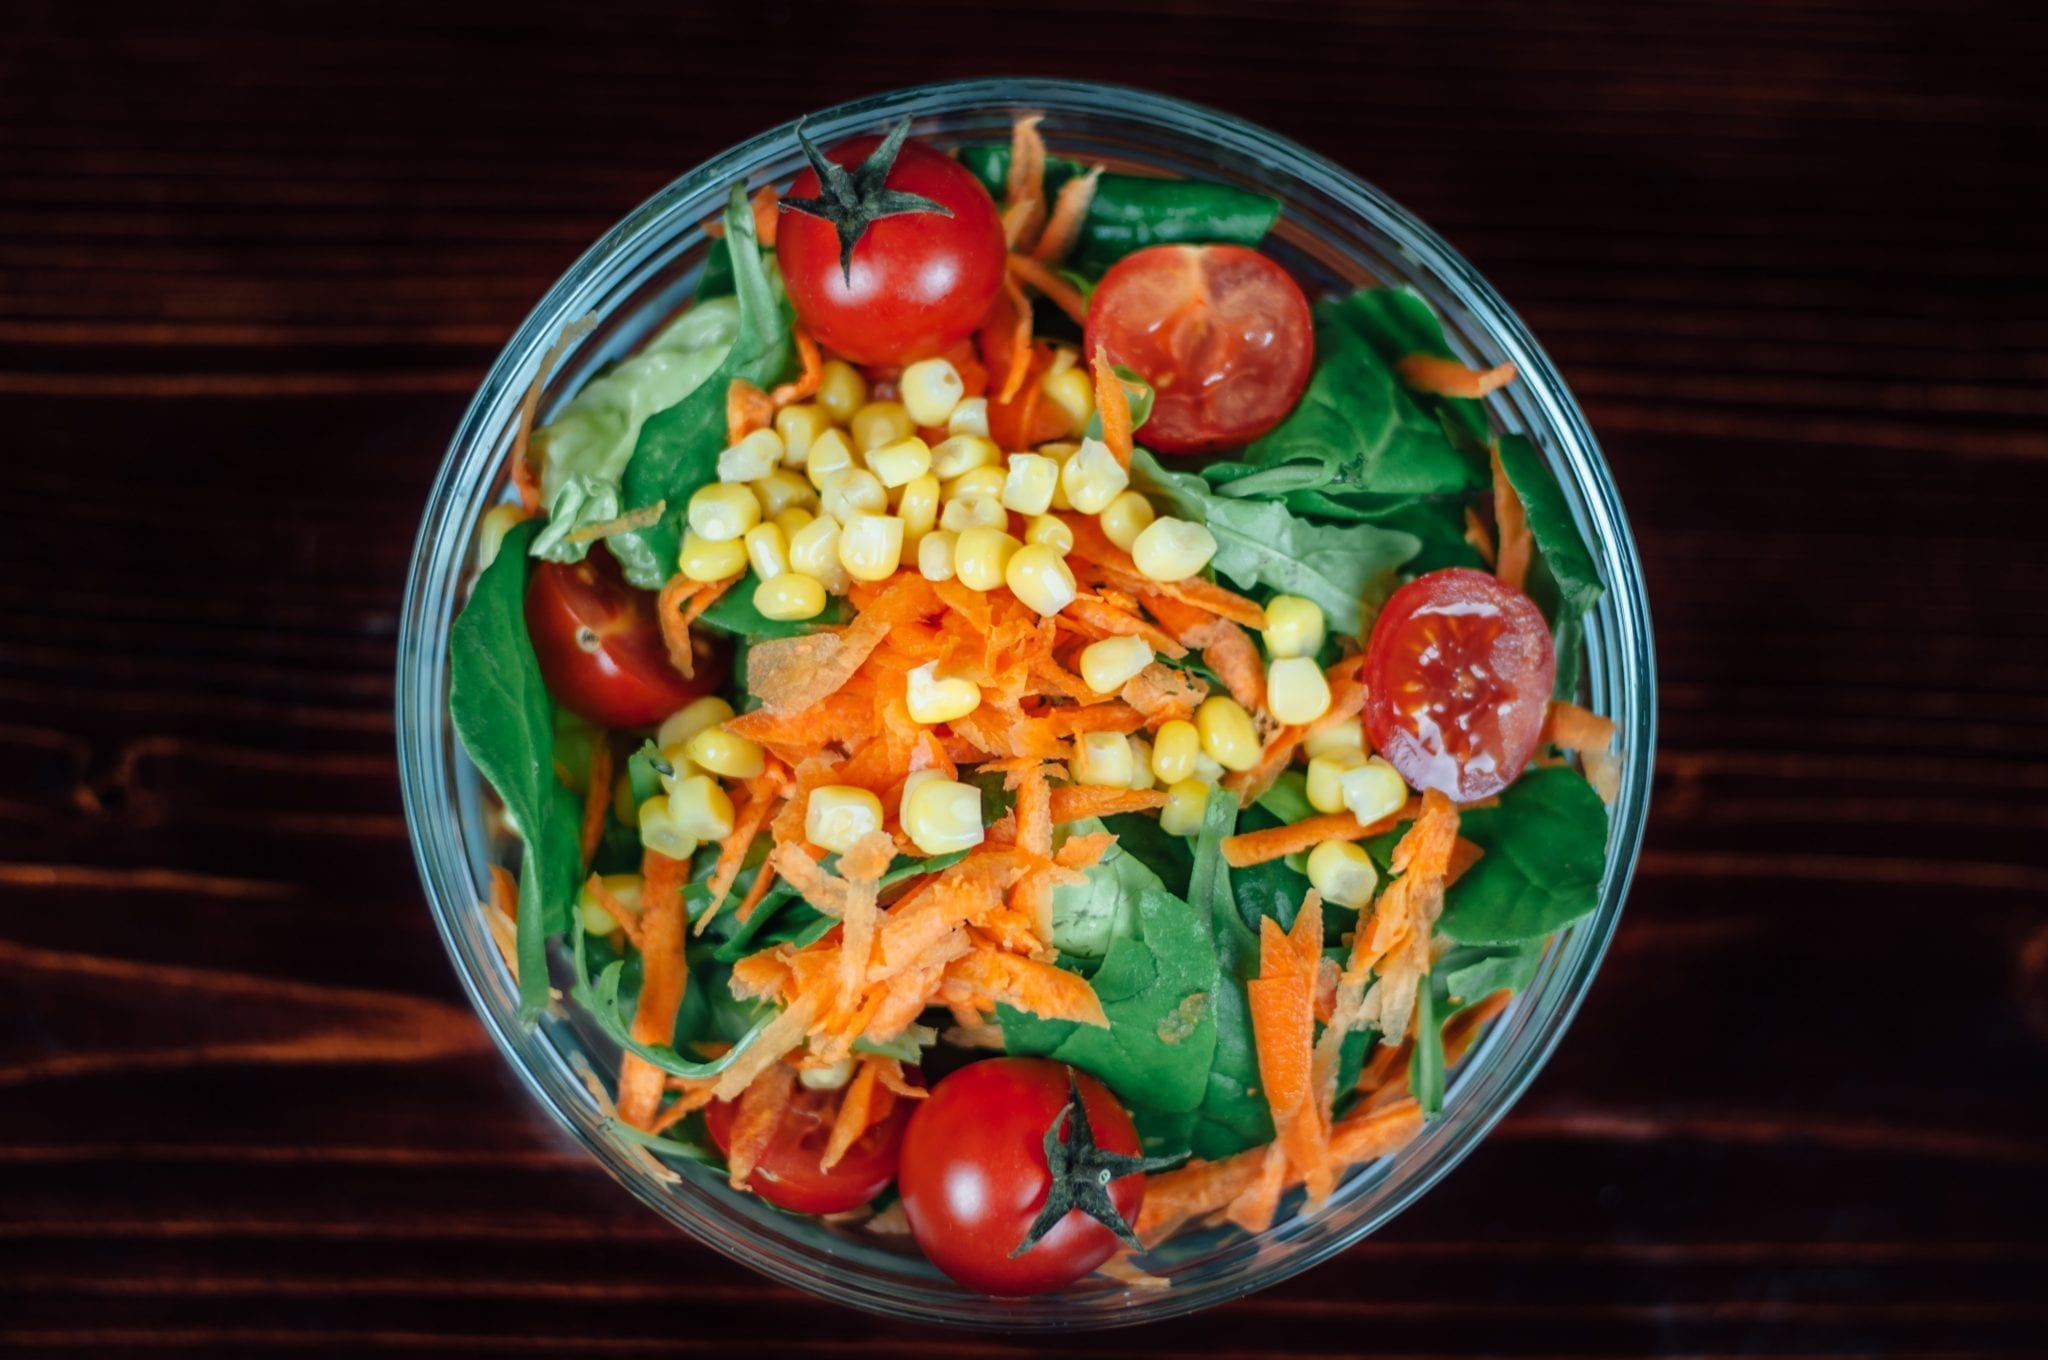 'From The Garden' Salad